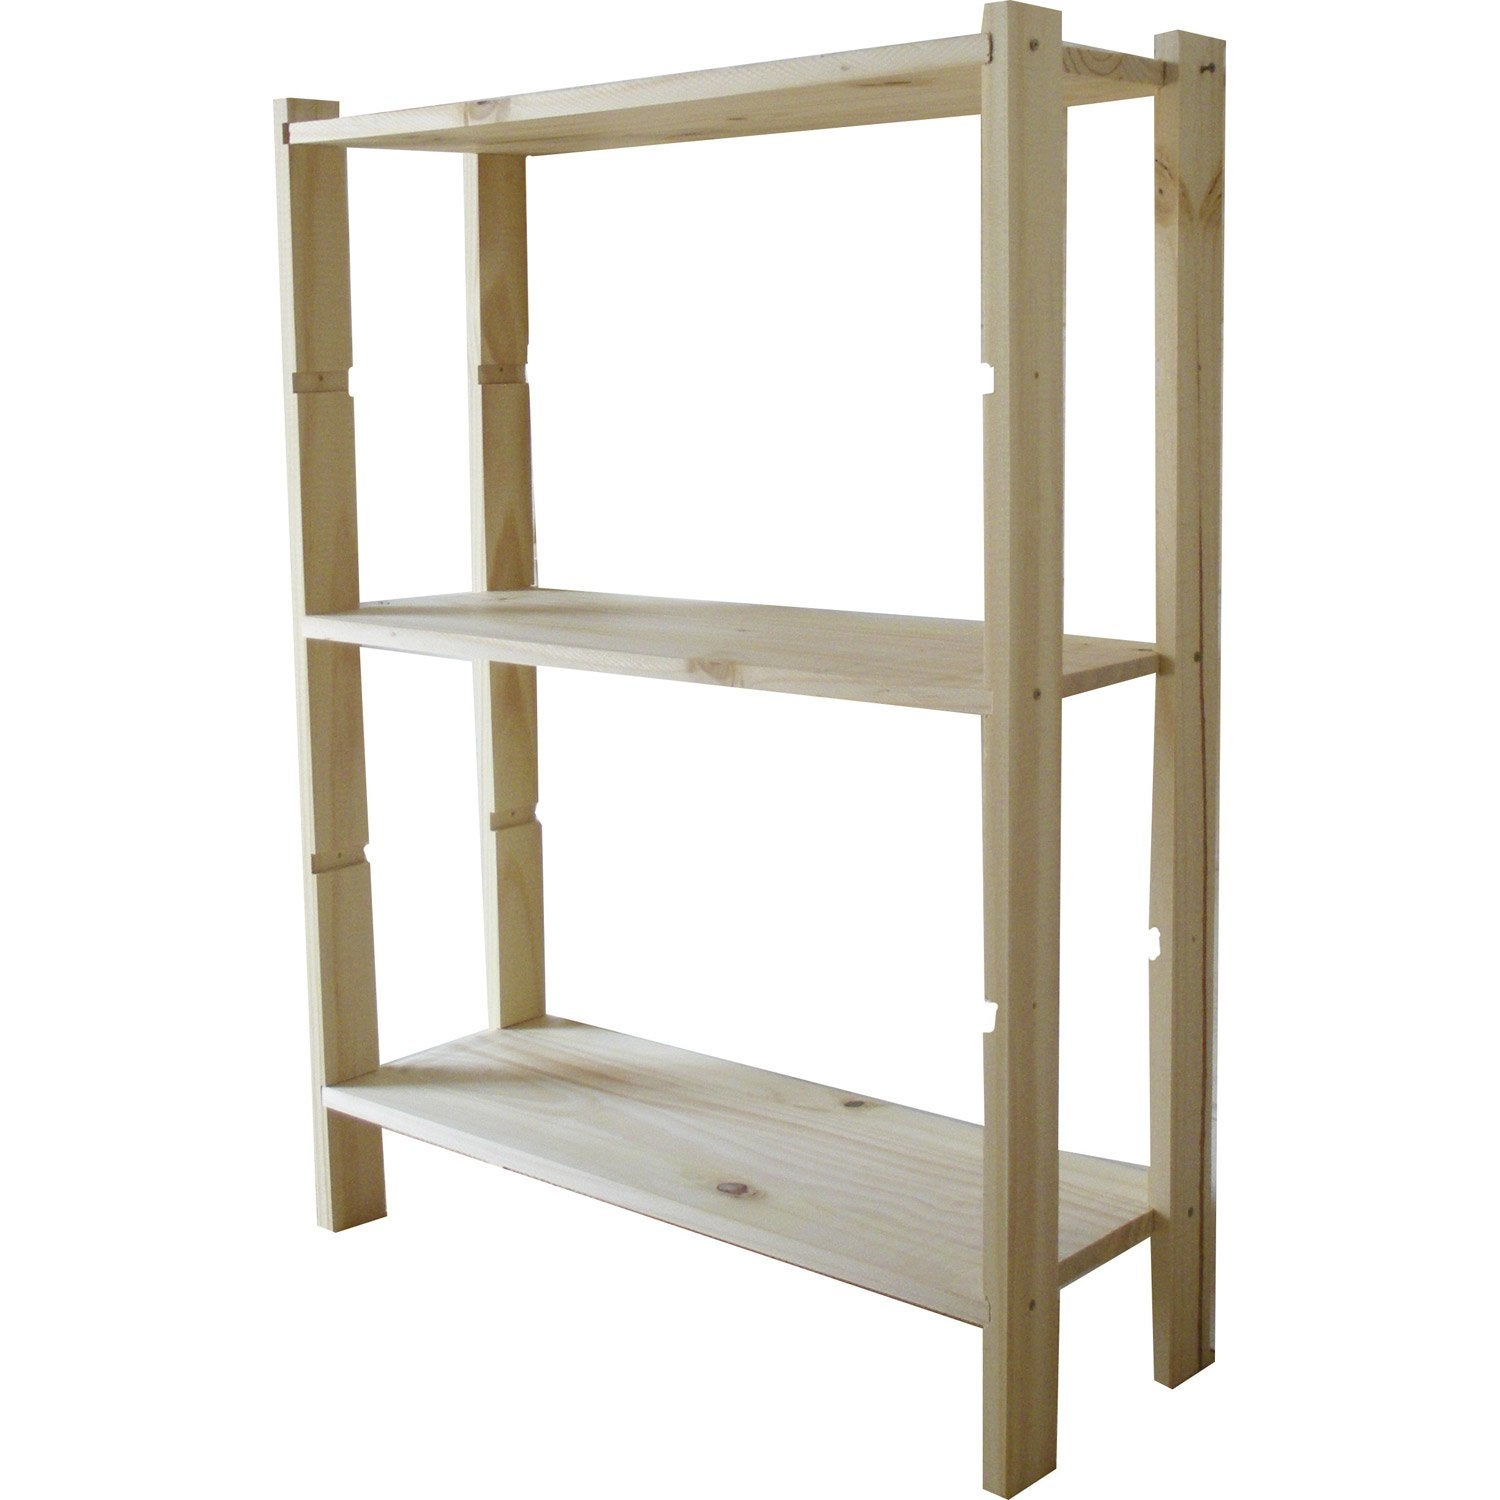 Etag re pin 3 tablettes x x cm leroy - Etagere modulable leroy merlin ...